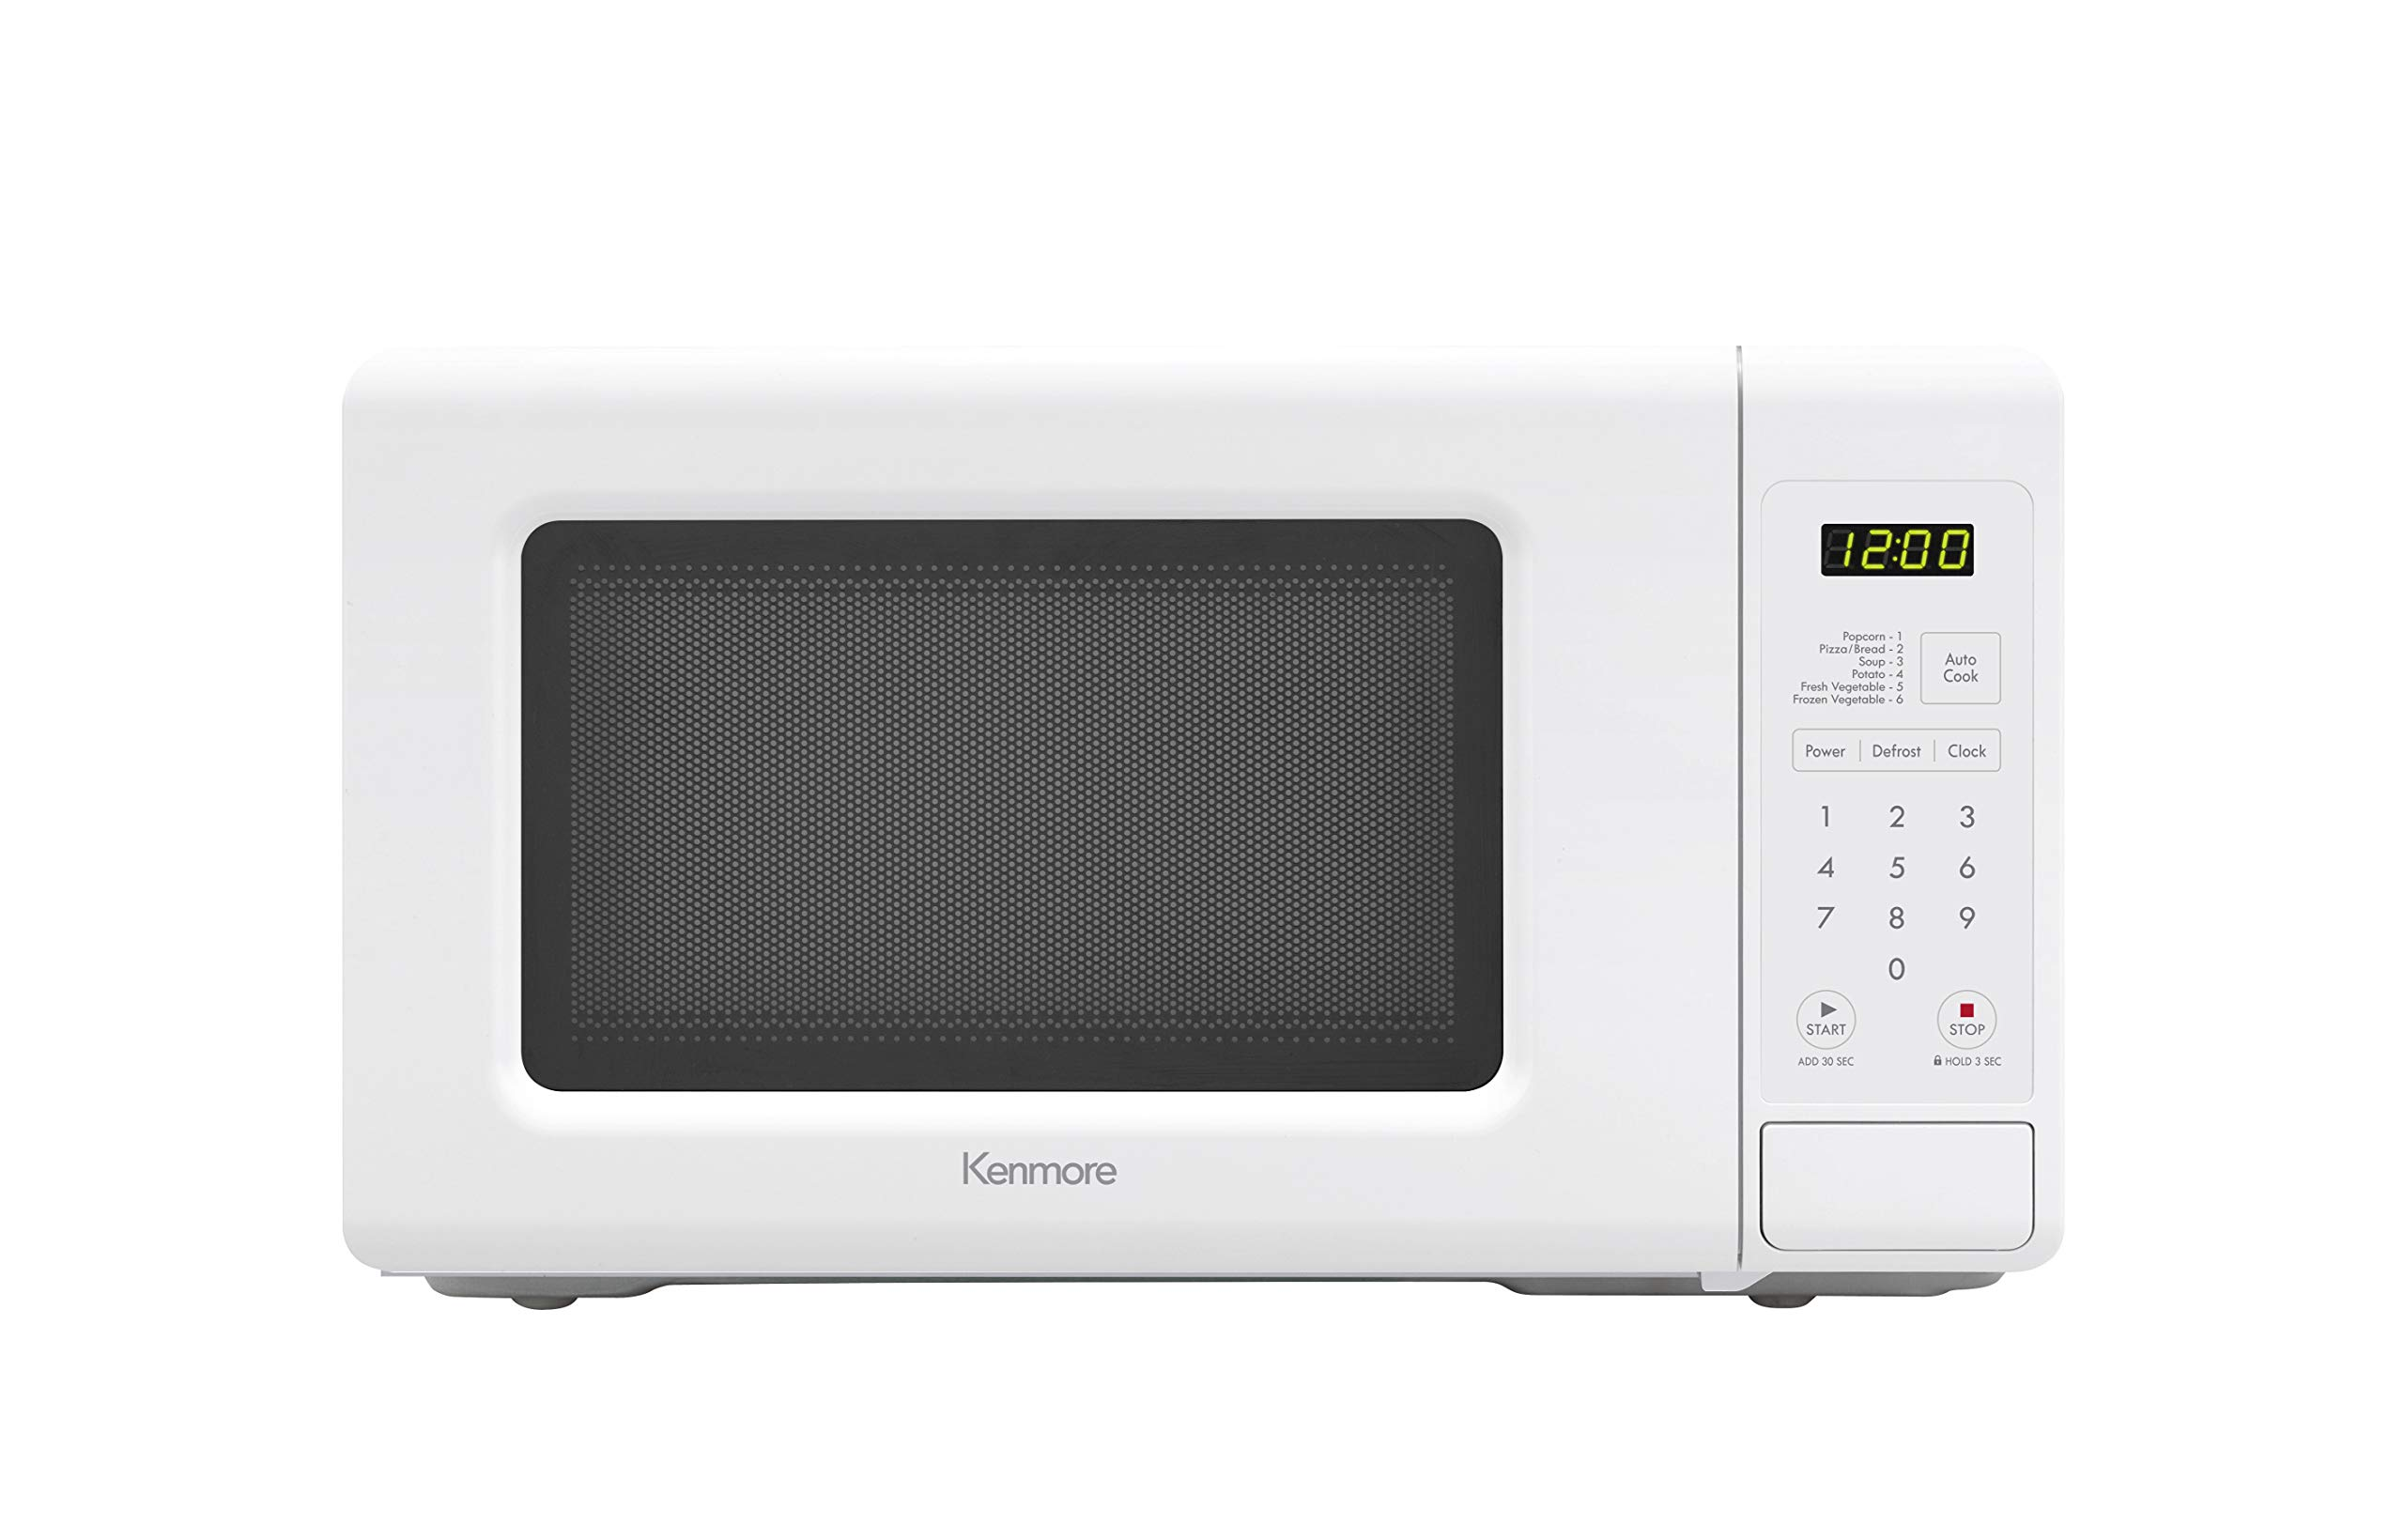 Kenmore 70722 0.7 cu. ft Small Countertop Microwave, cu.ft, White by Kenmore